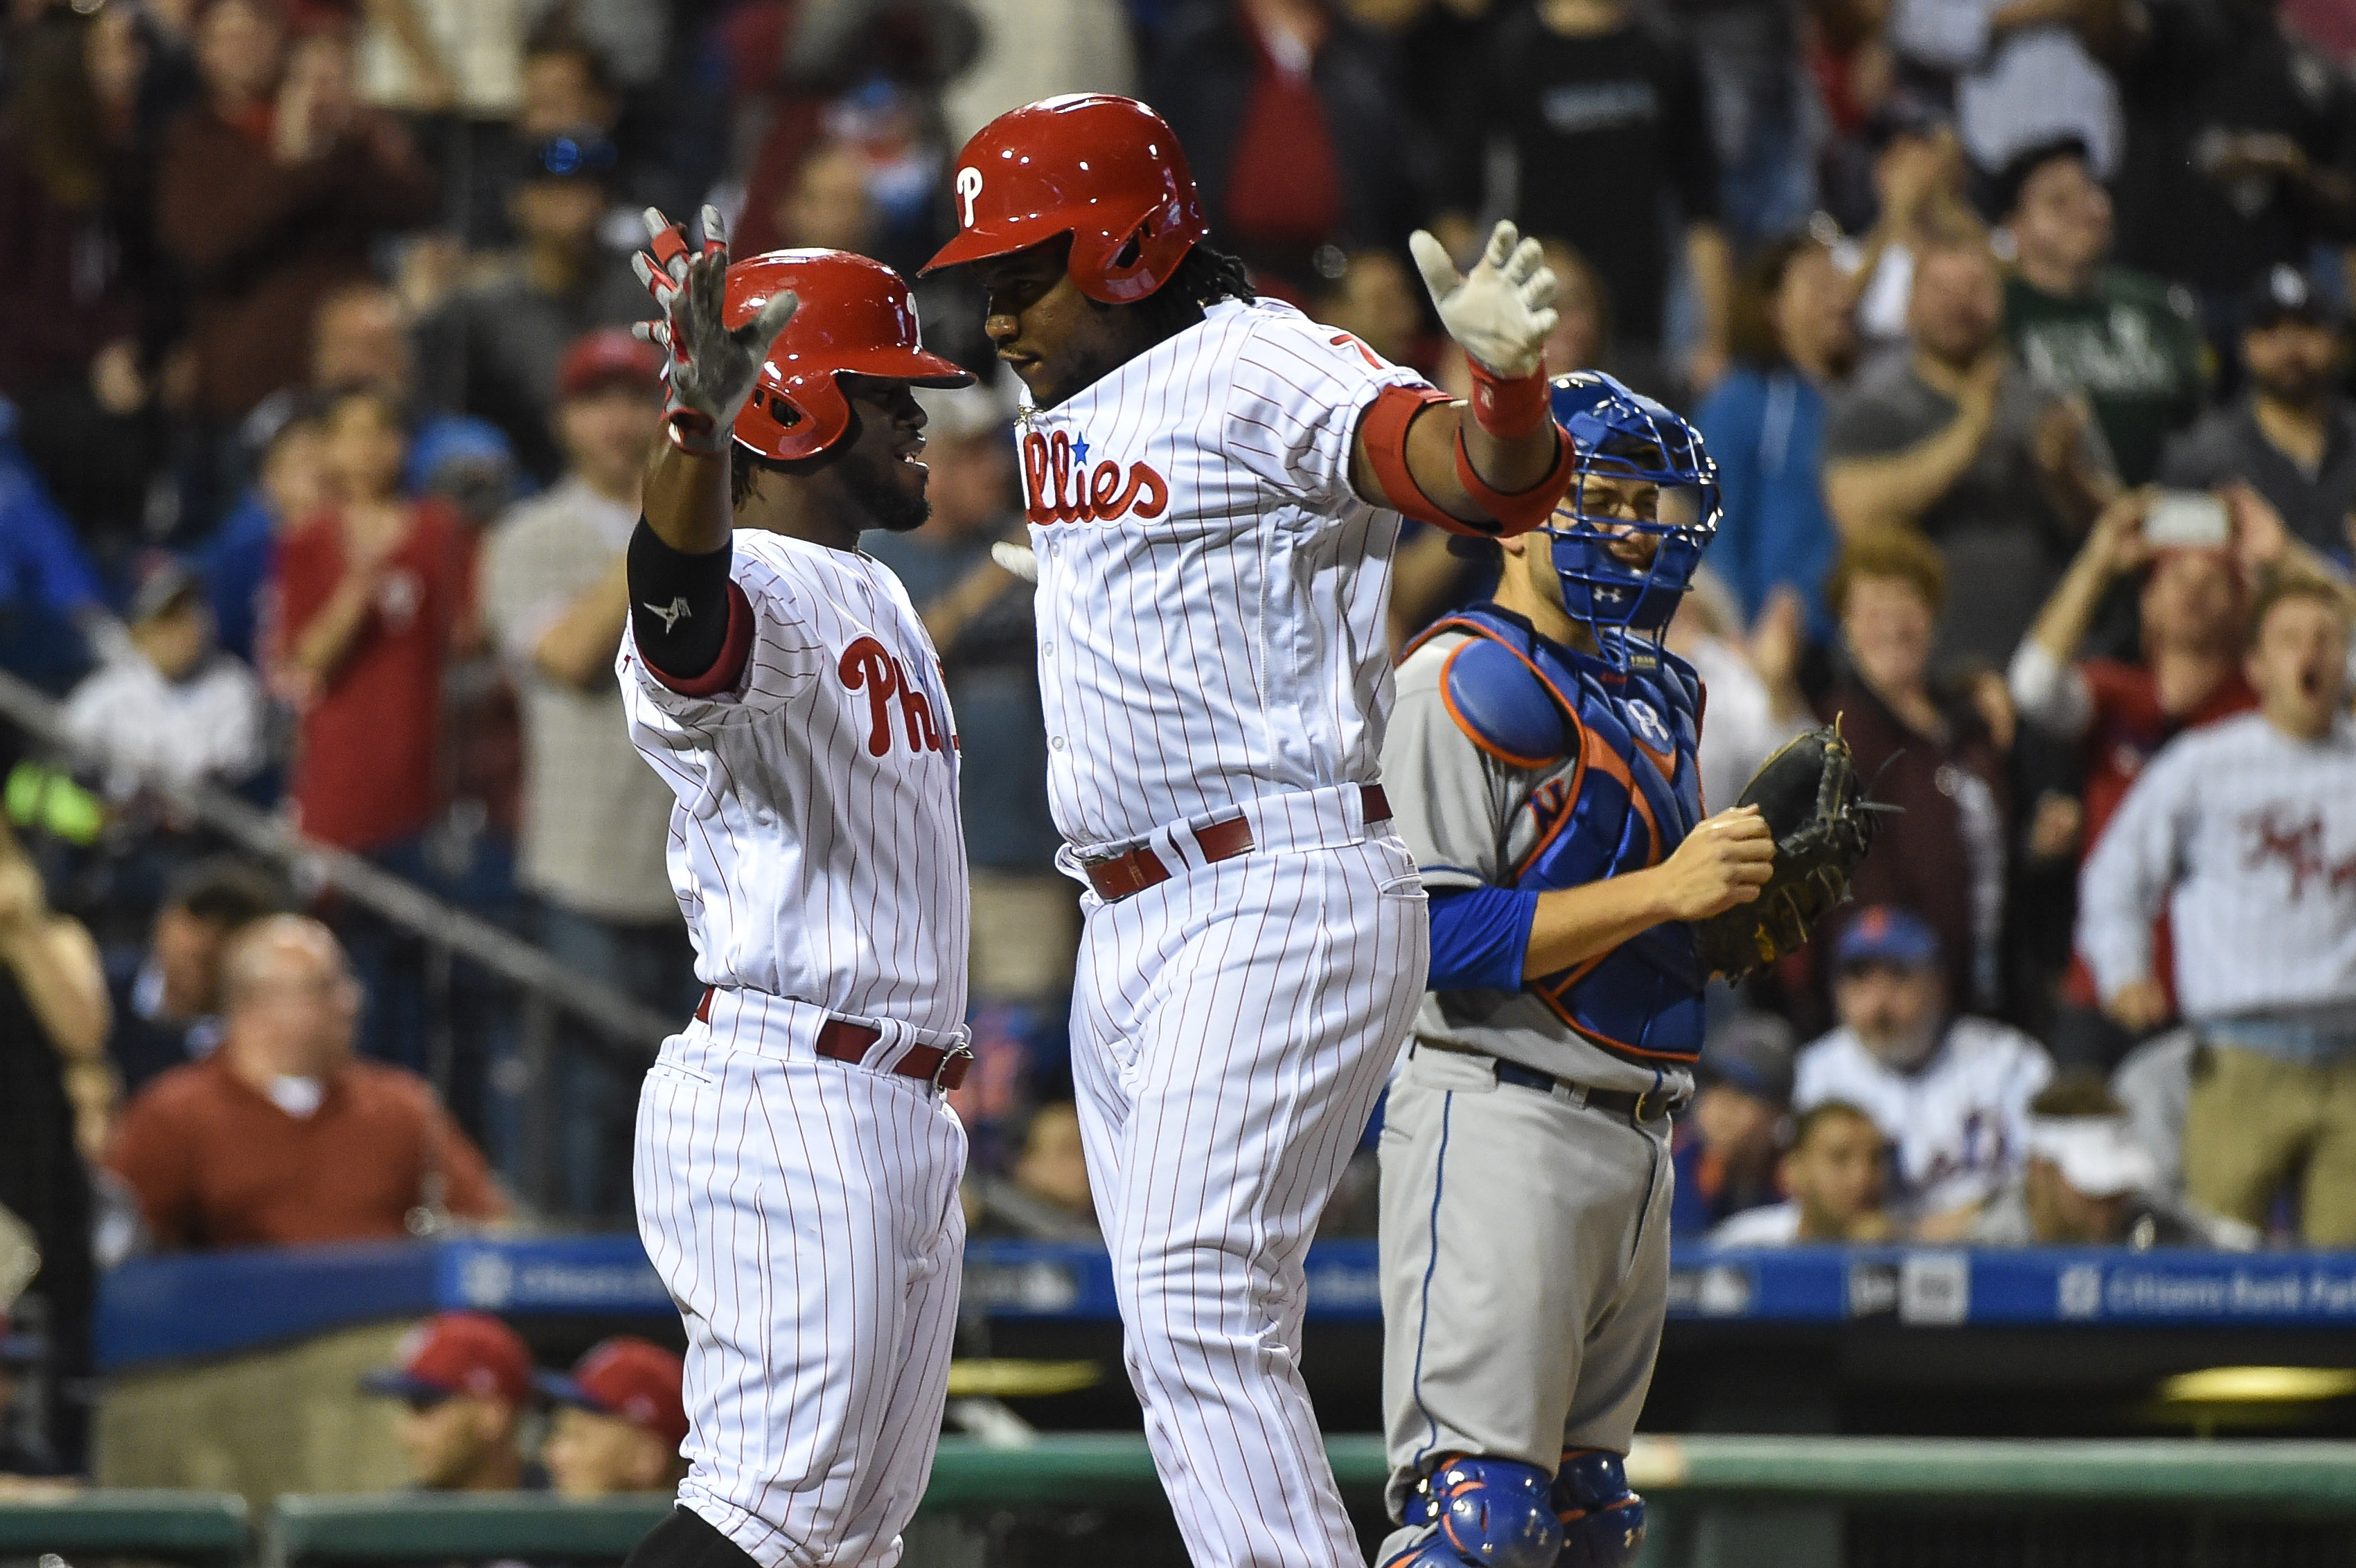 Harper's homer in 9th lifts Nationals over Phils 6-4